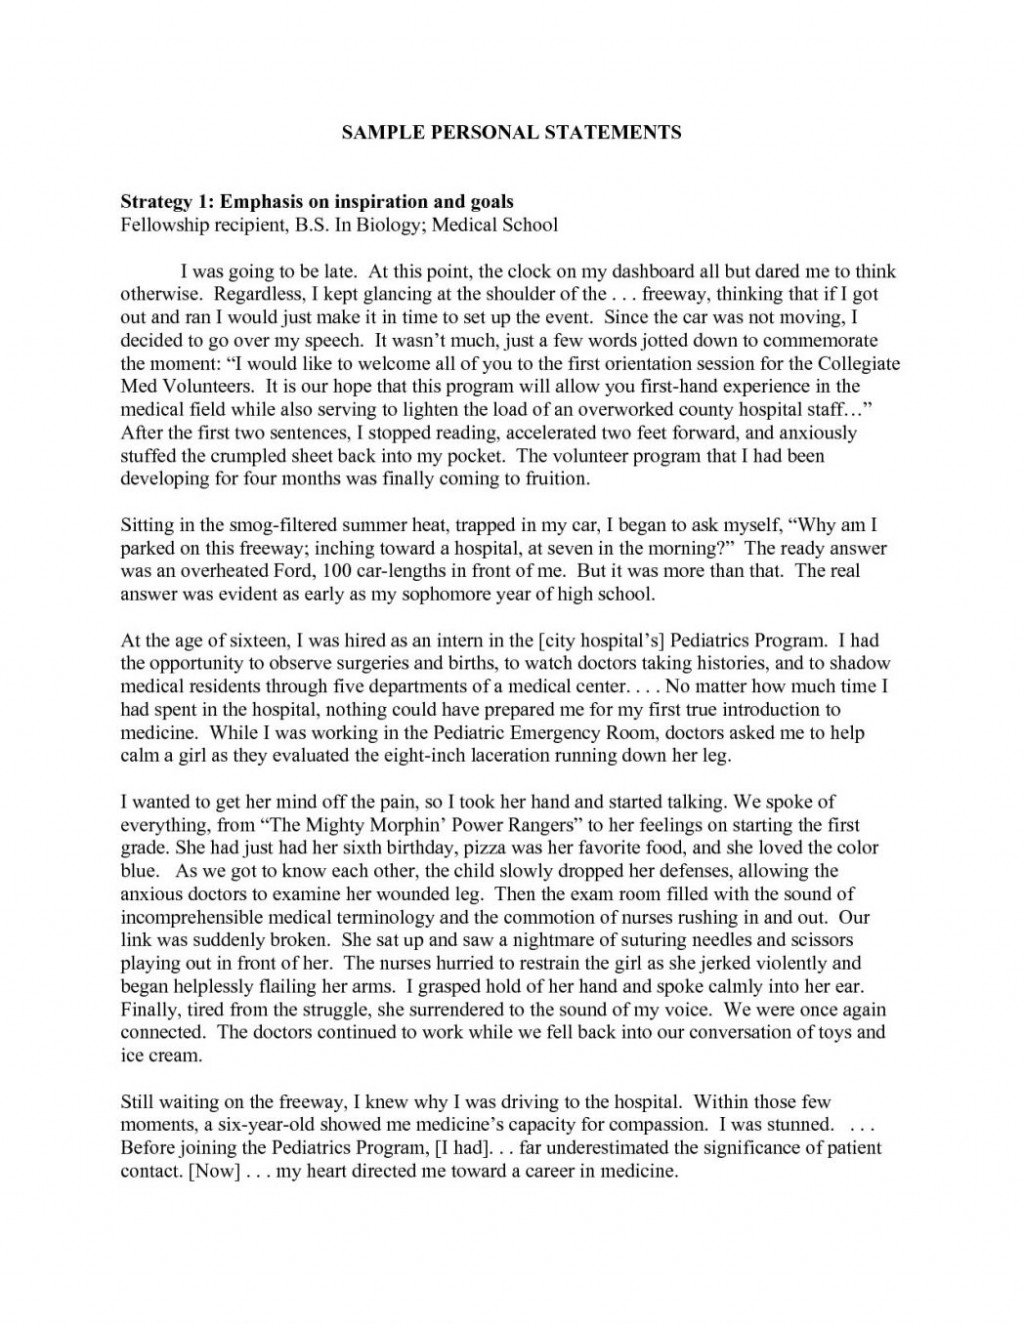 003 Writing An Essay For Graduate School Essays Samples Columbia Businessples Personal Statement Template Vtk Stanford London Application Help Service Harvard 1048x1356 Why Impressive Prepscholar Sample College Confidential Large